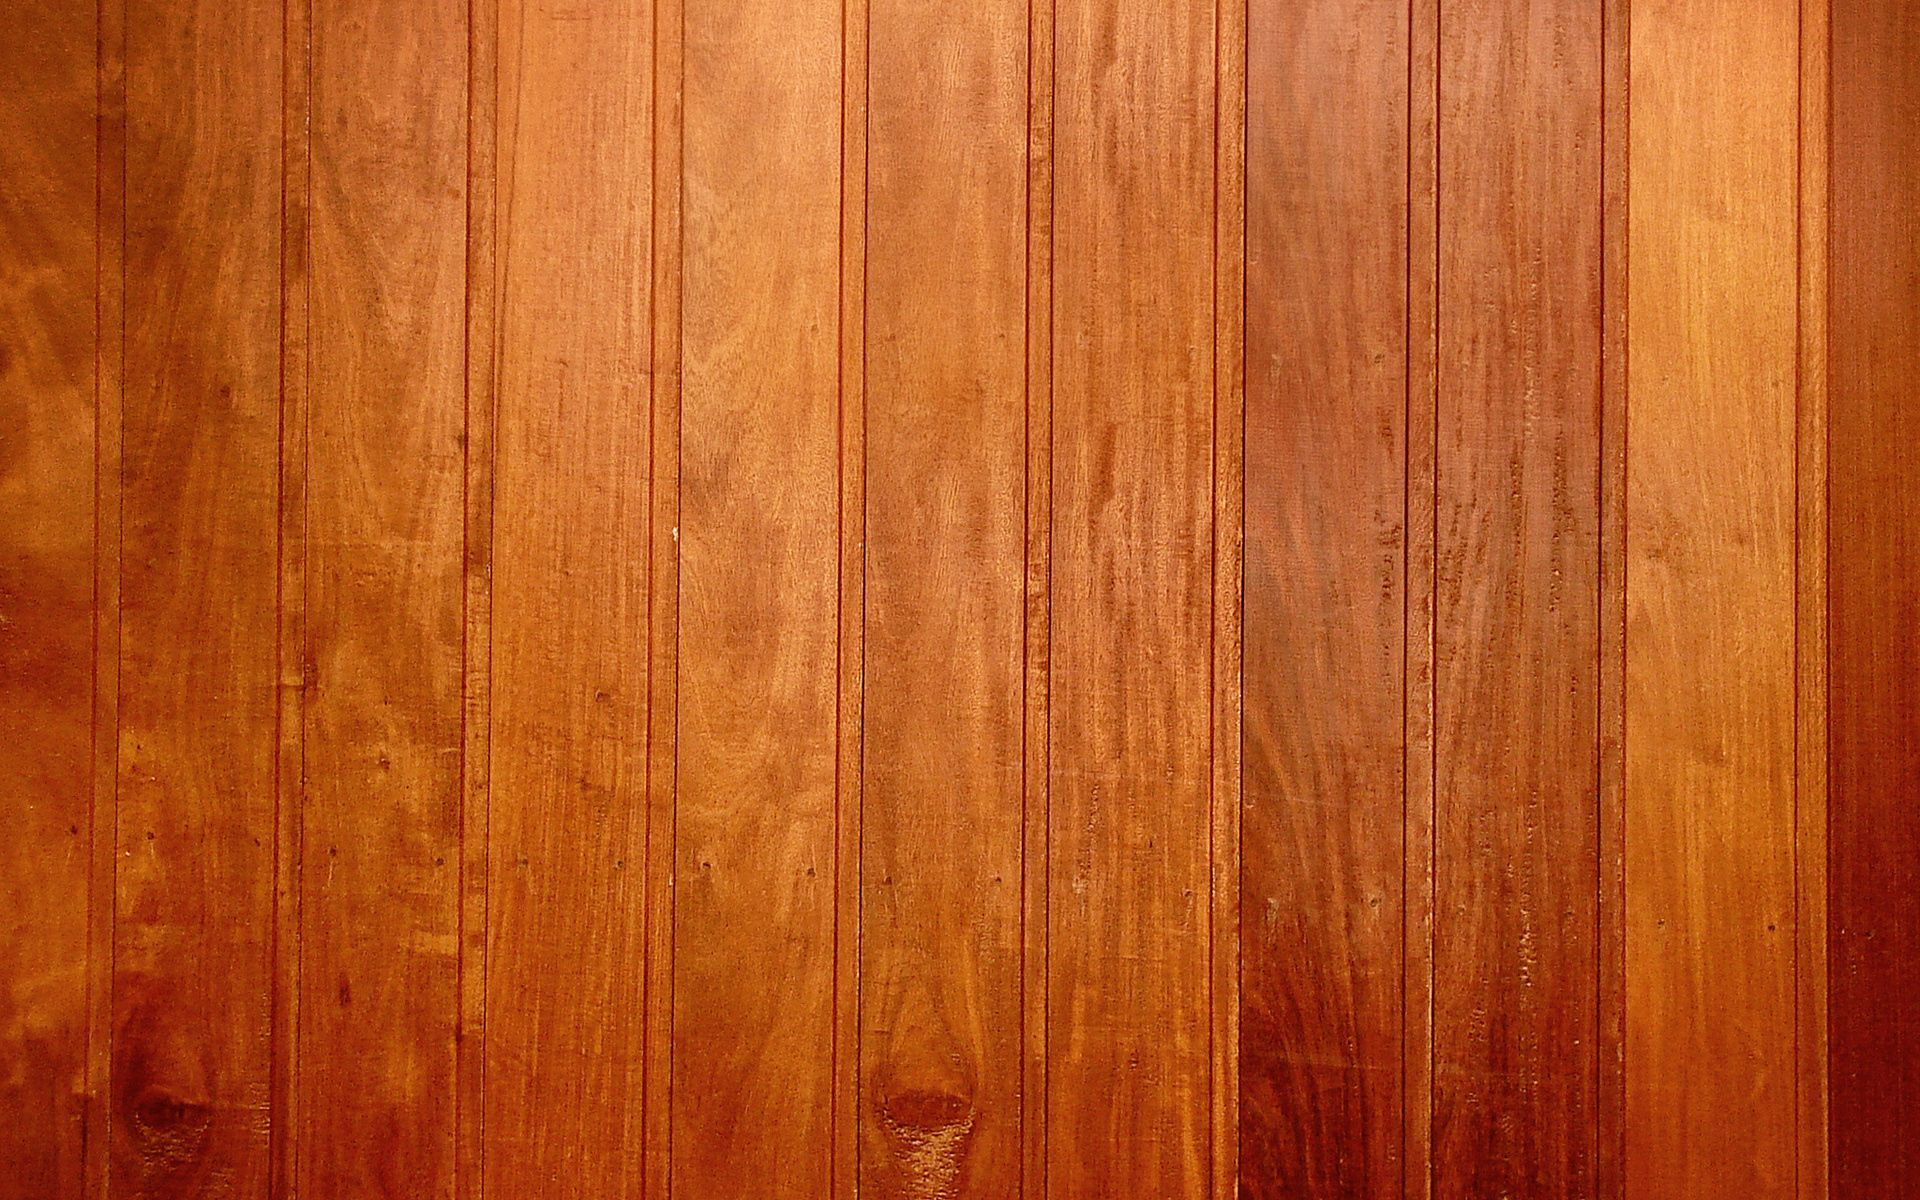 Best Planks wallpapers for phone screen